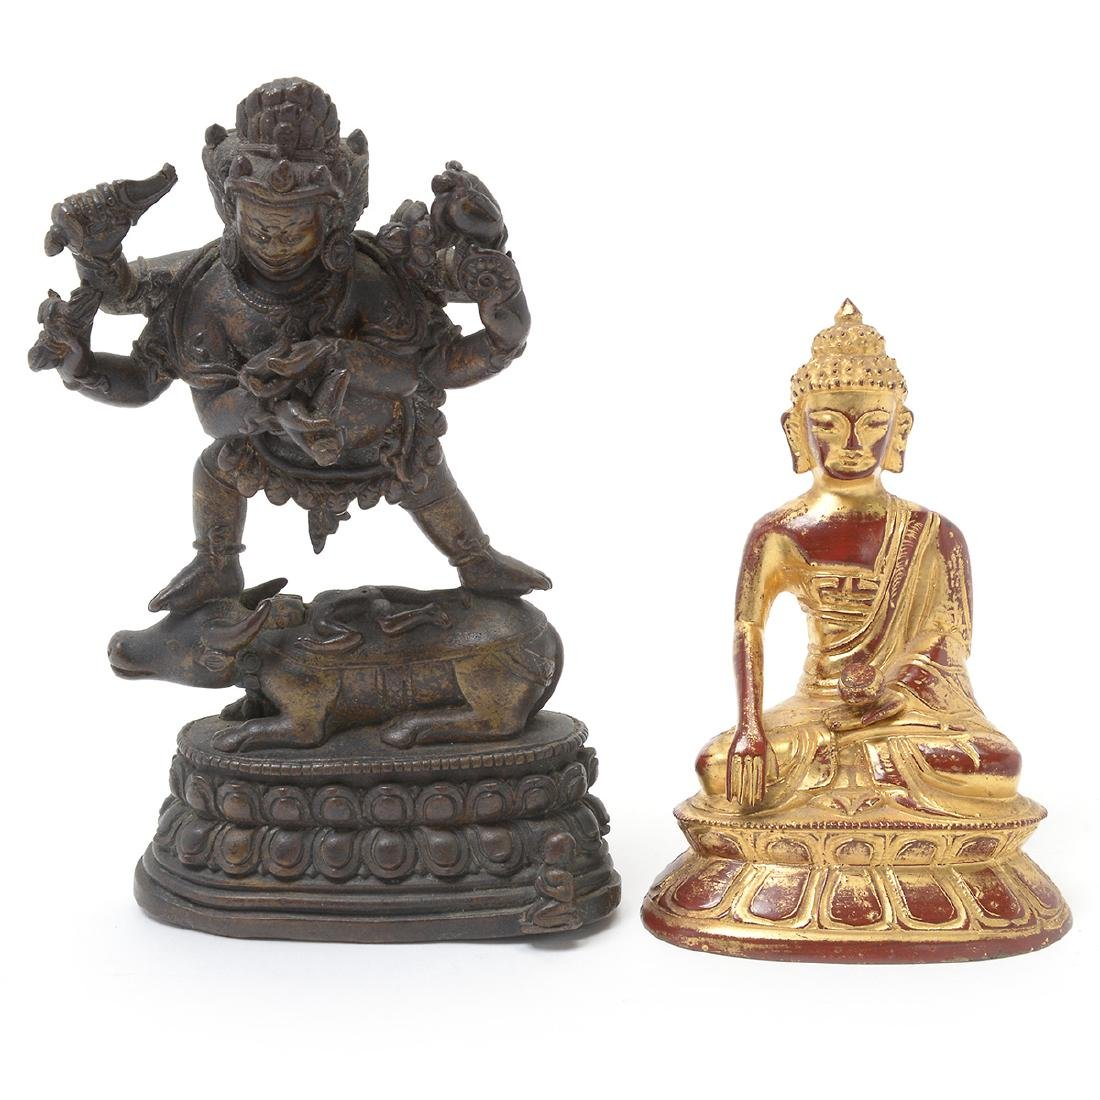 Two Bronze Buddhist Figures, 17th/18th Century